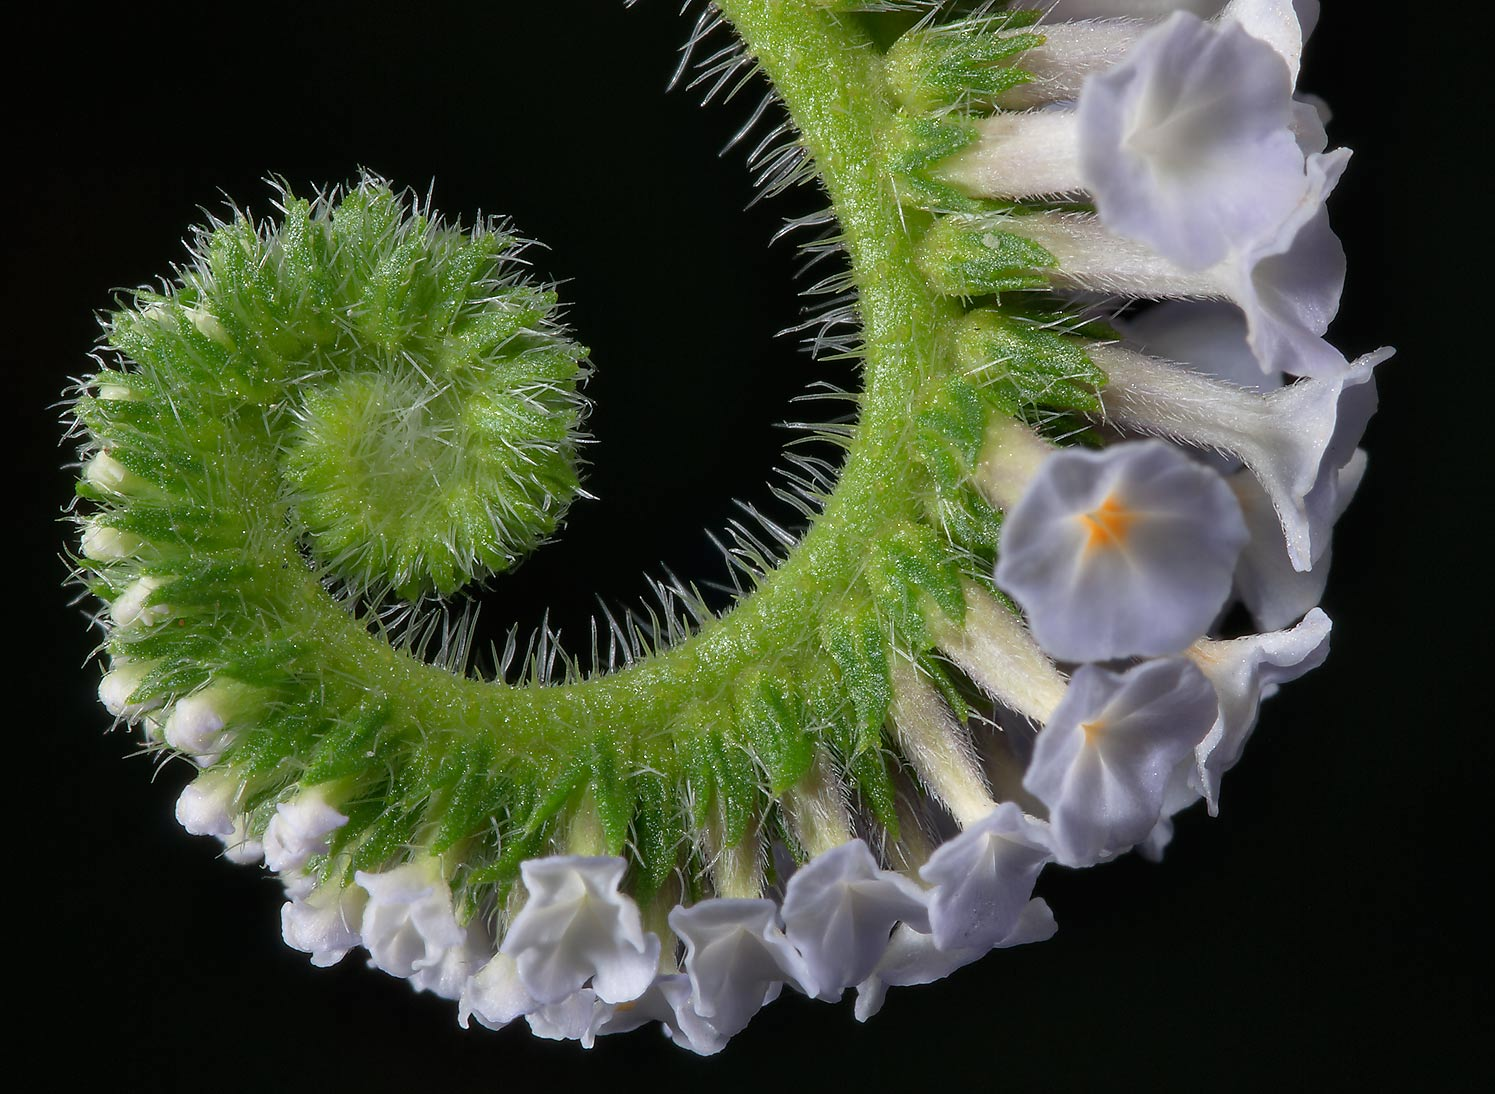 Uncoiling inflorescence of turnsole (Heliotropium...State Historic Site. Washington, Texas